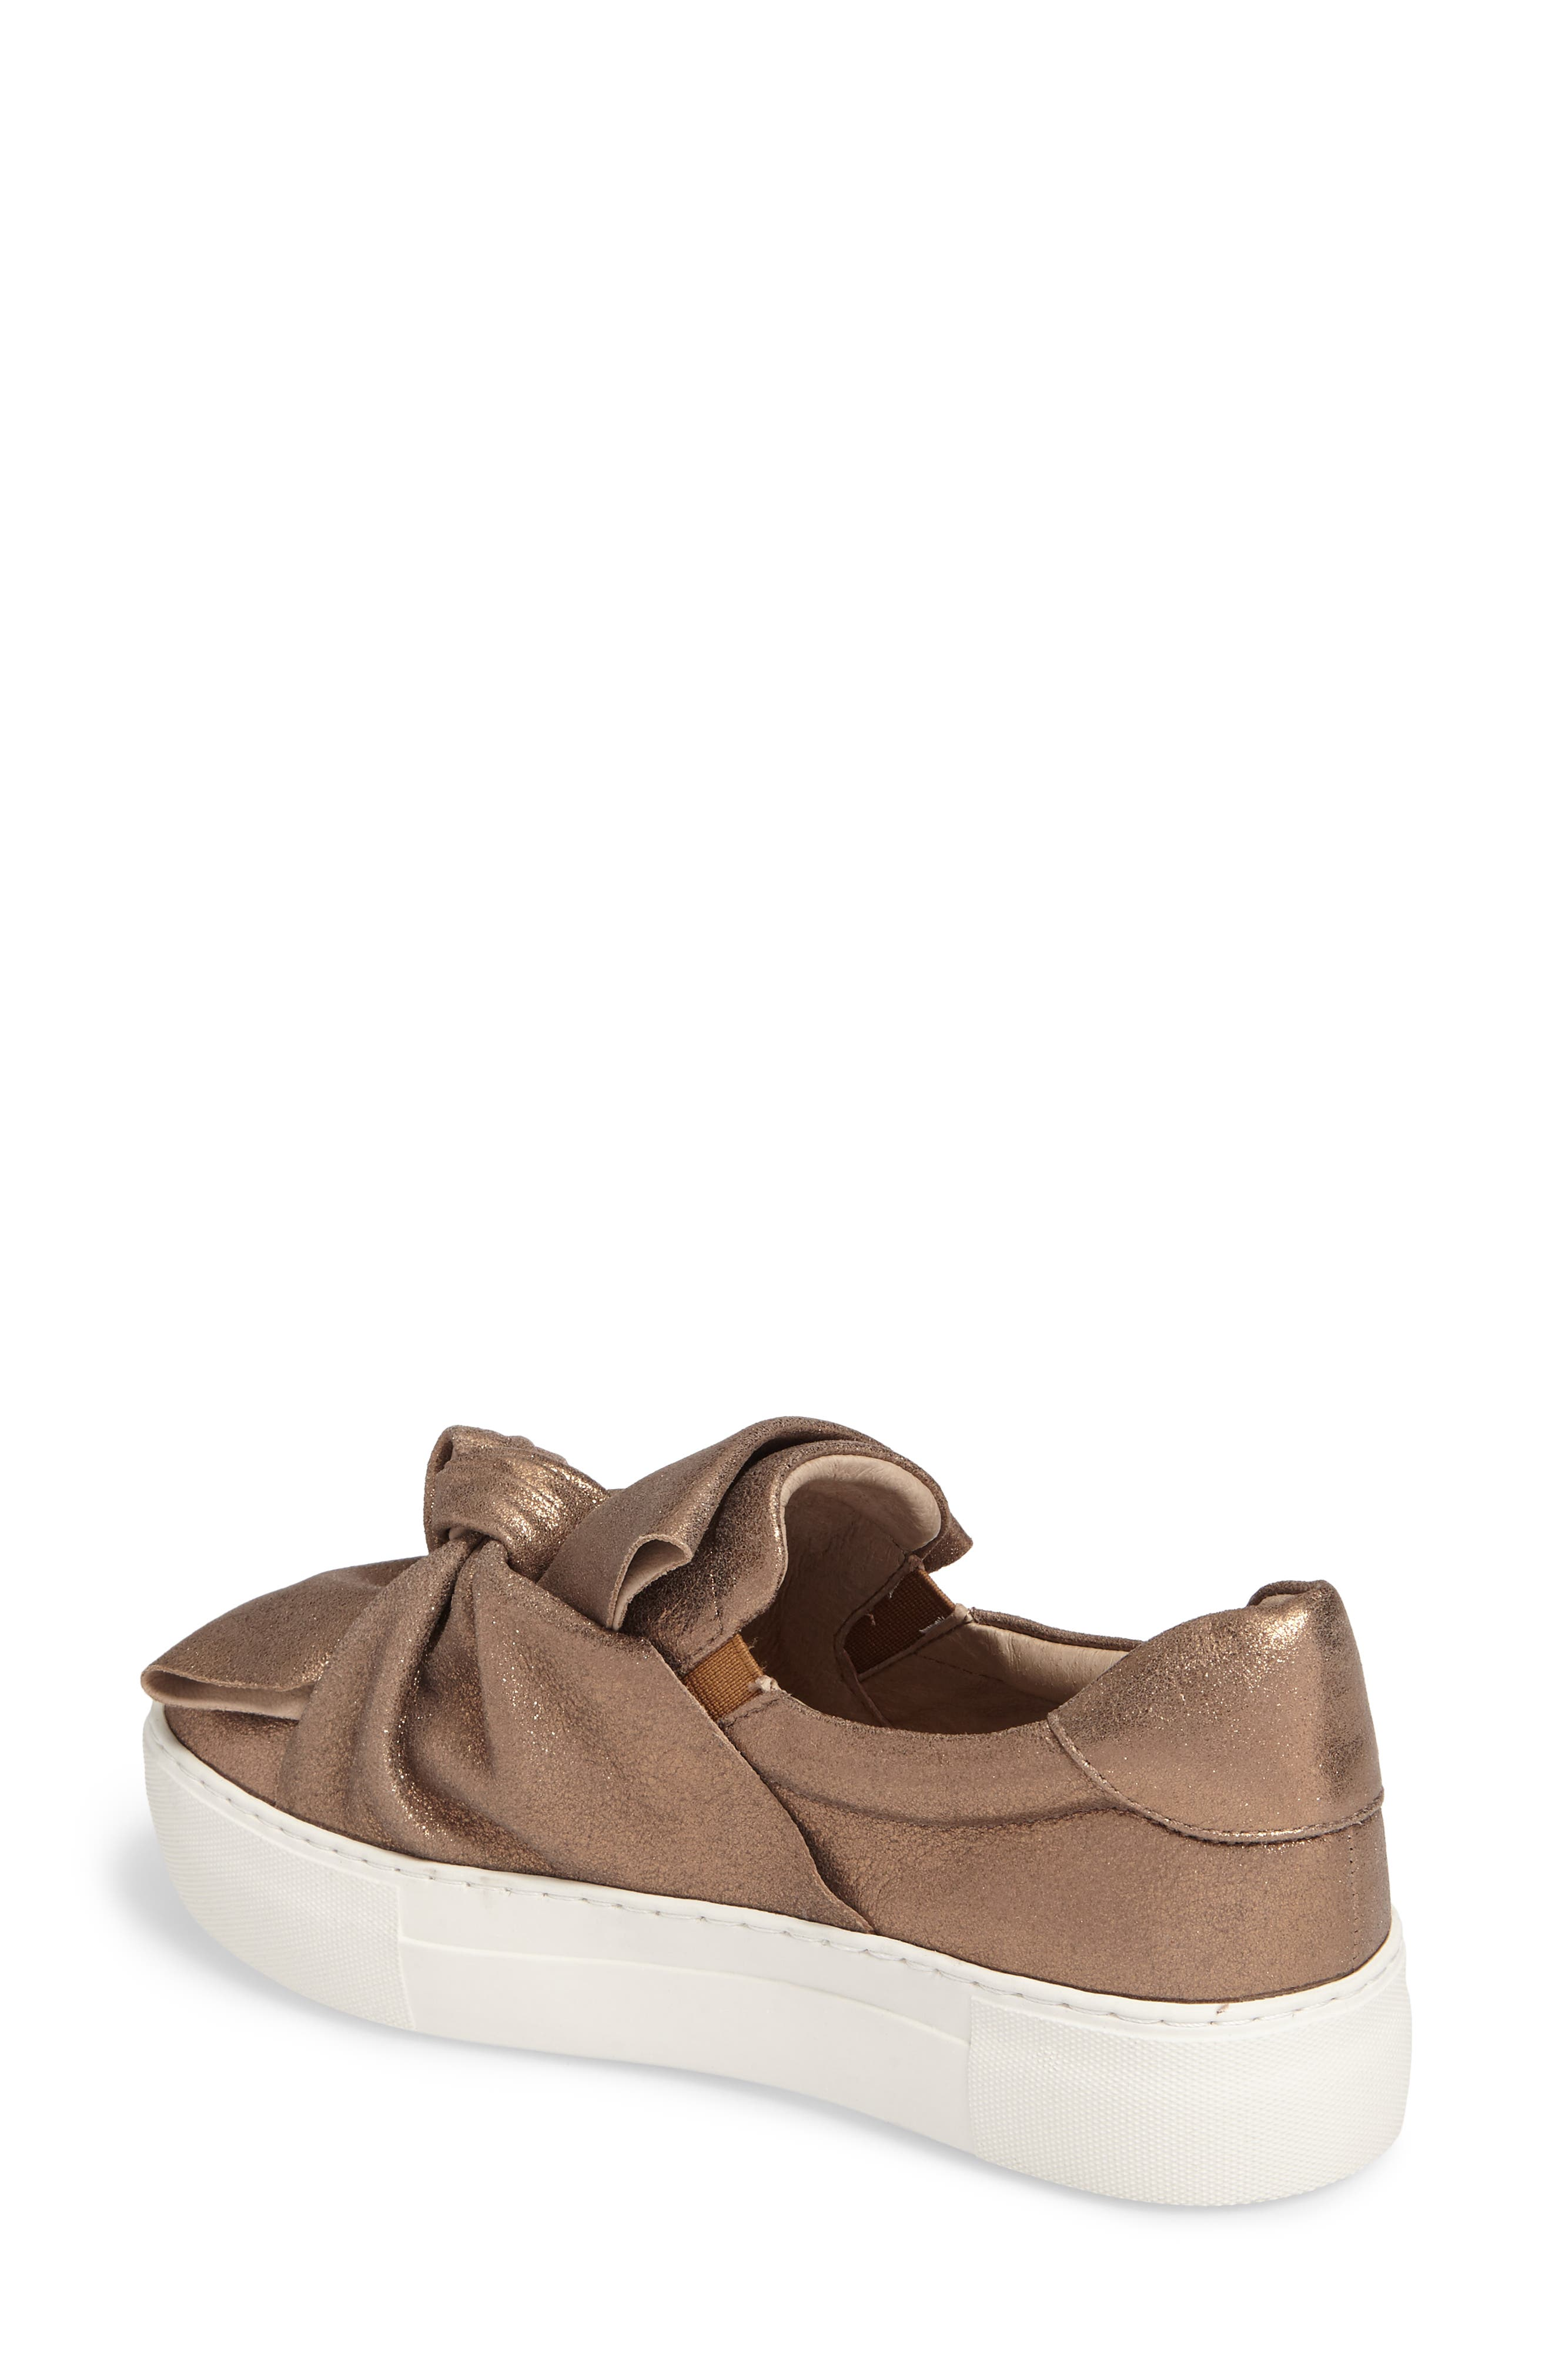 Audra Slip-On Sneaker,                             Alternate thumbnail 2, color,                             Taupe Leather